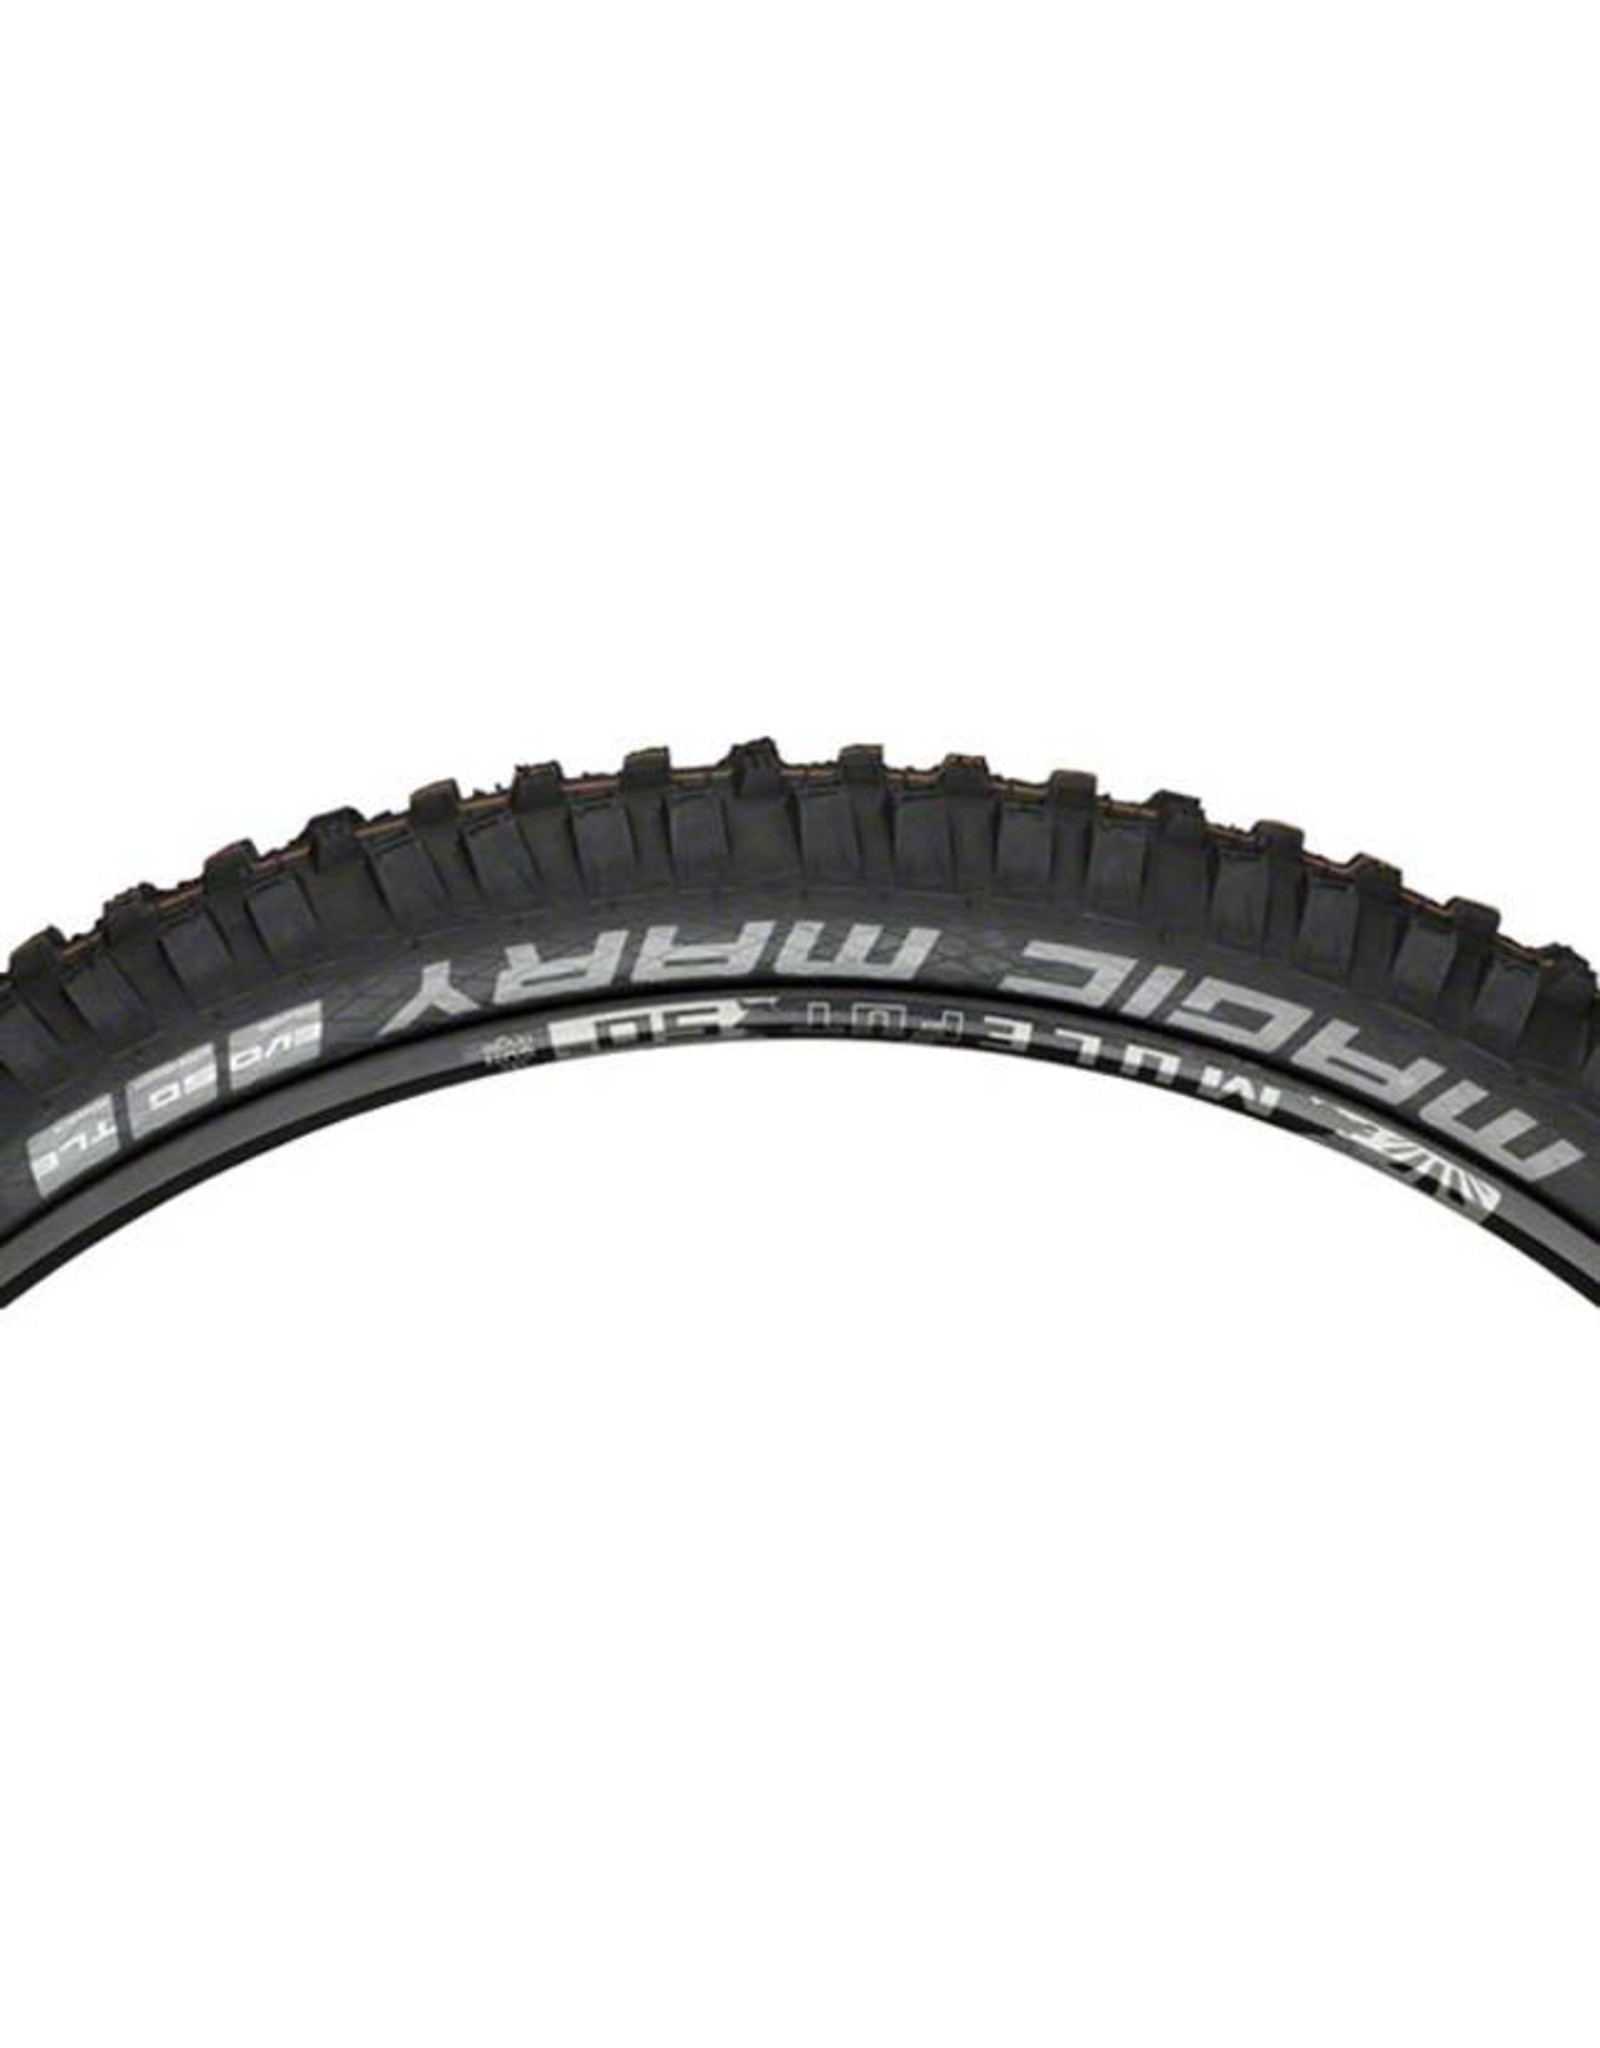 "Schwalbe Schwalbe Magic Mary Tire: 27.5 x 2.35"", Folding Bead, Evolution Line, Addix Soft Compound, Super Gravity, Tubeless Easy, Black"